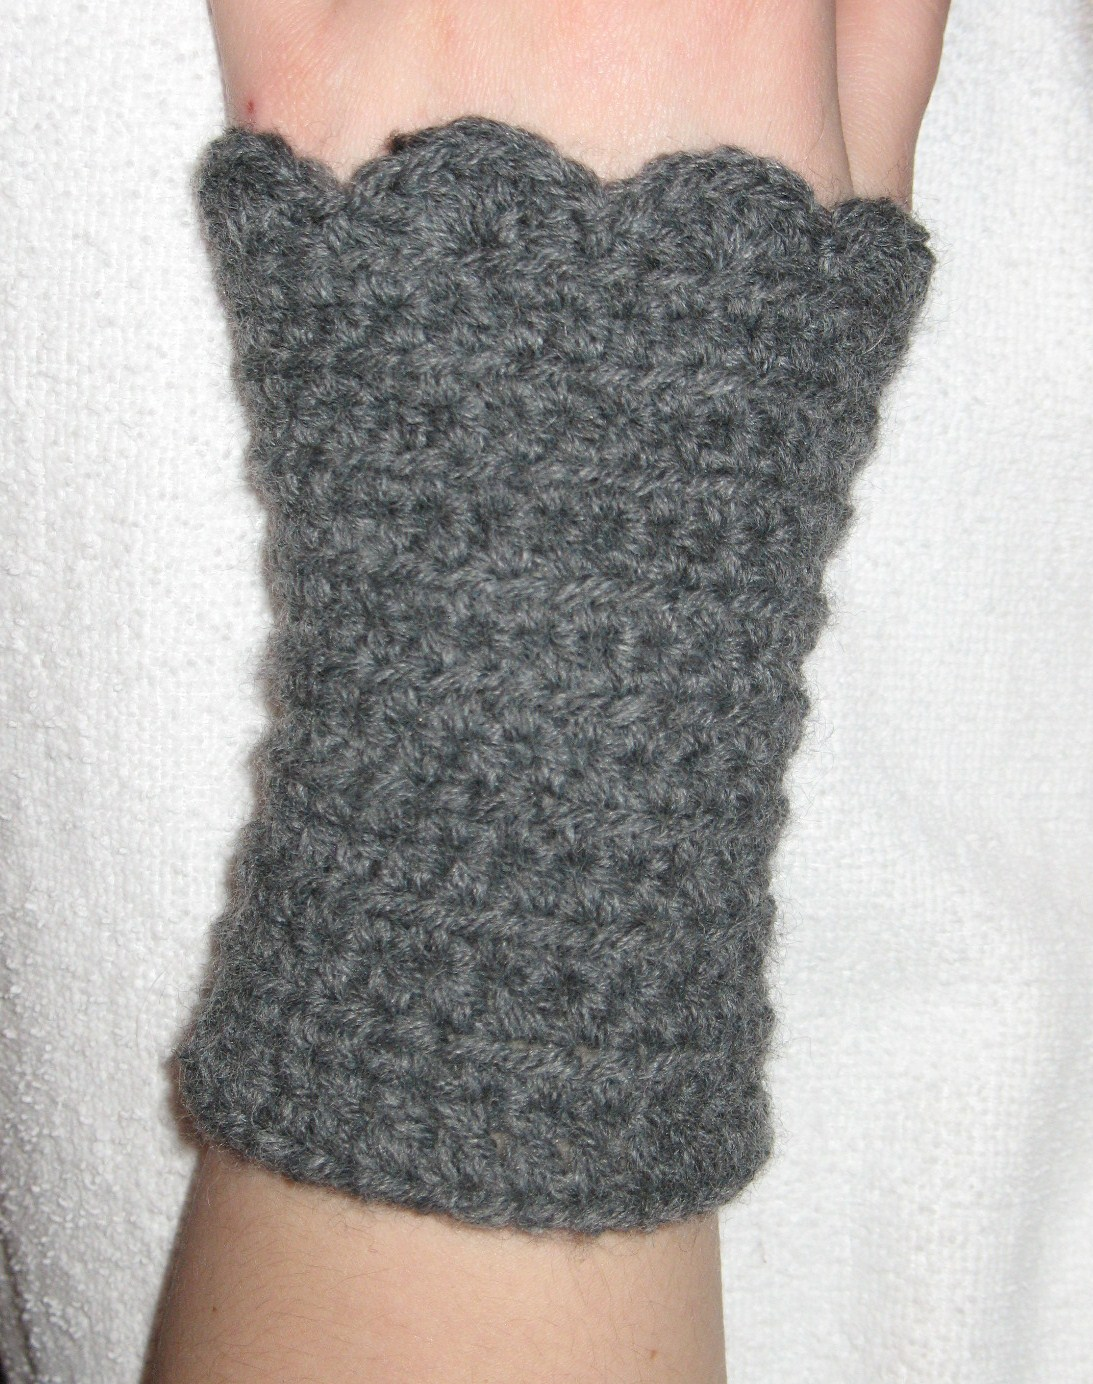 Hand Crochet Patterns : CROCHET HAND WARMERS PATTERN FREE PATTERNS